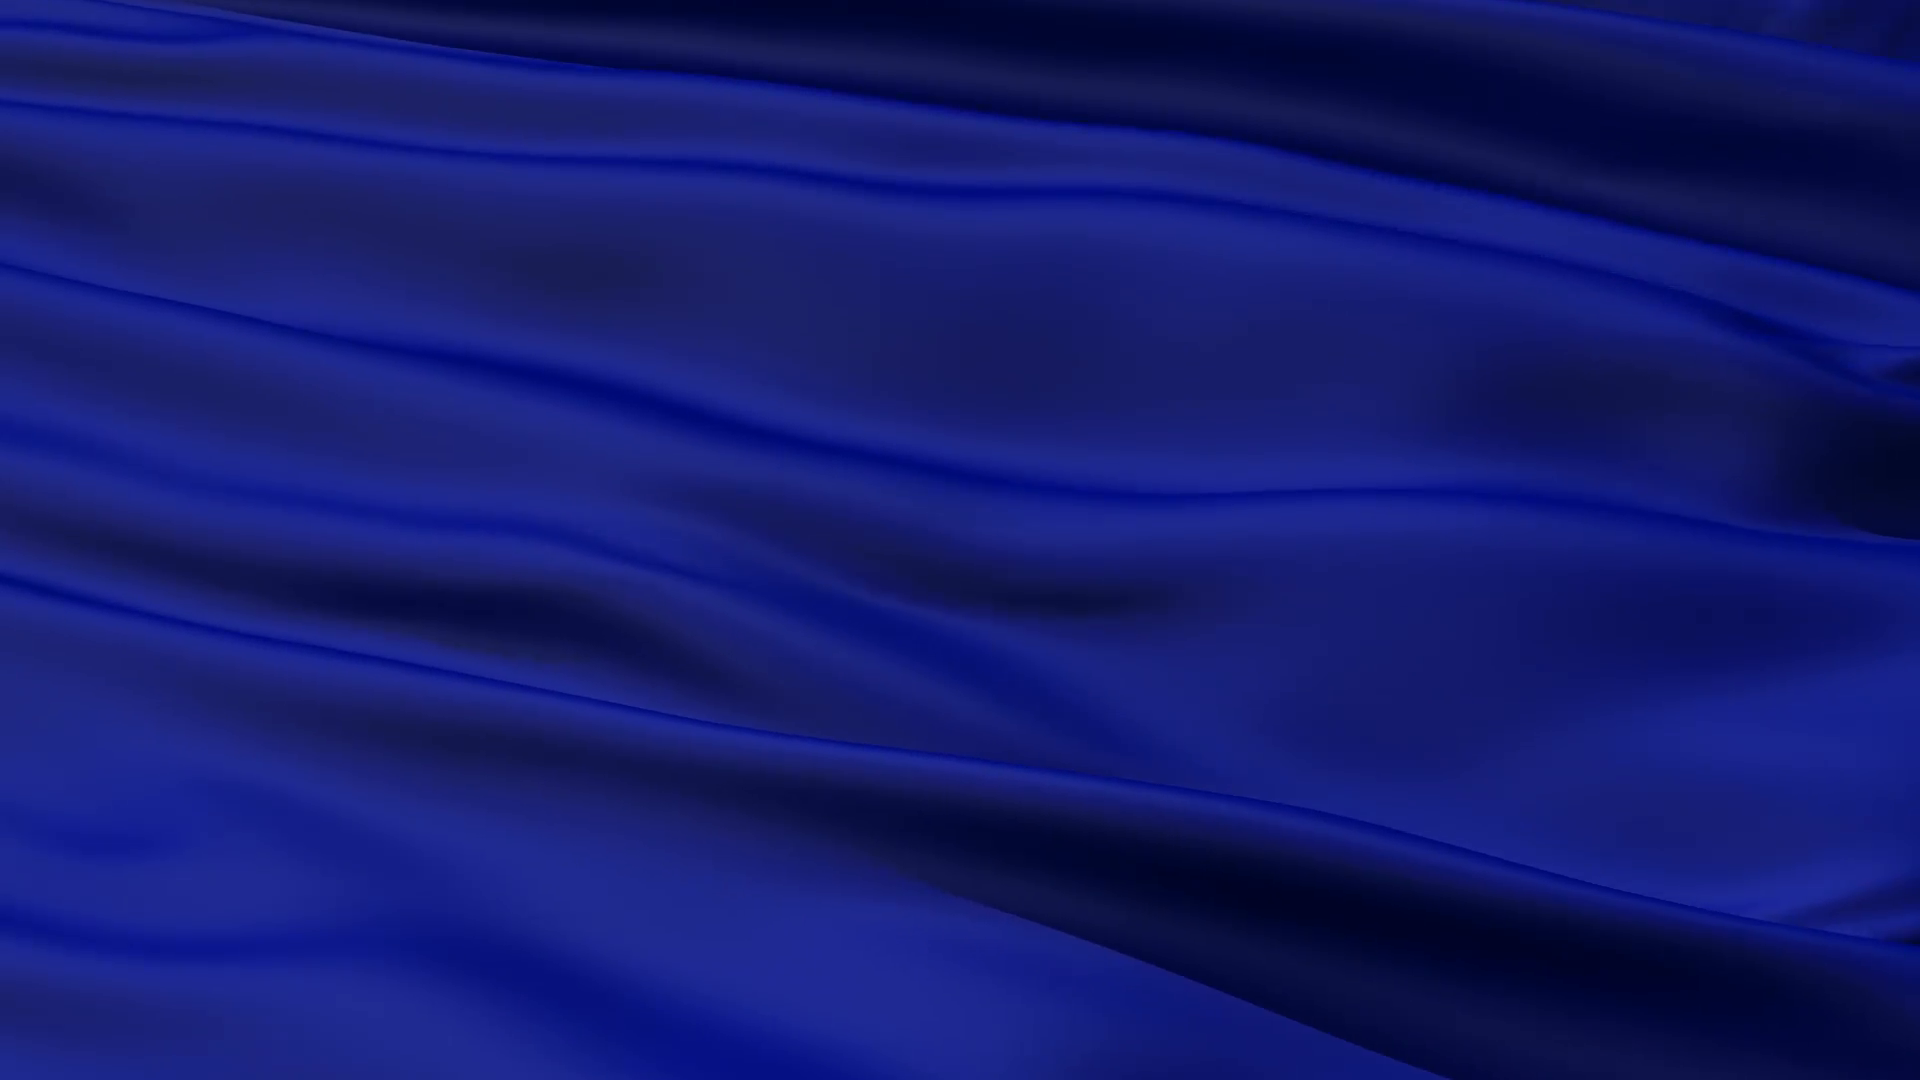 Deep Royal Blue Material Background Motion Background.